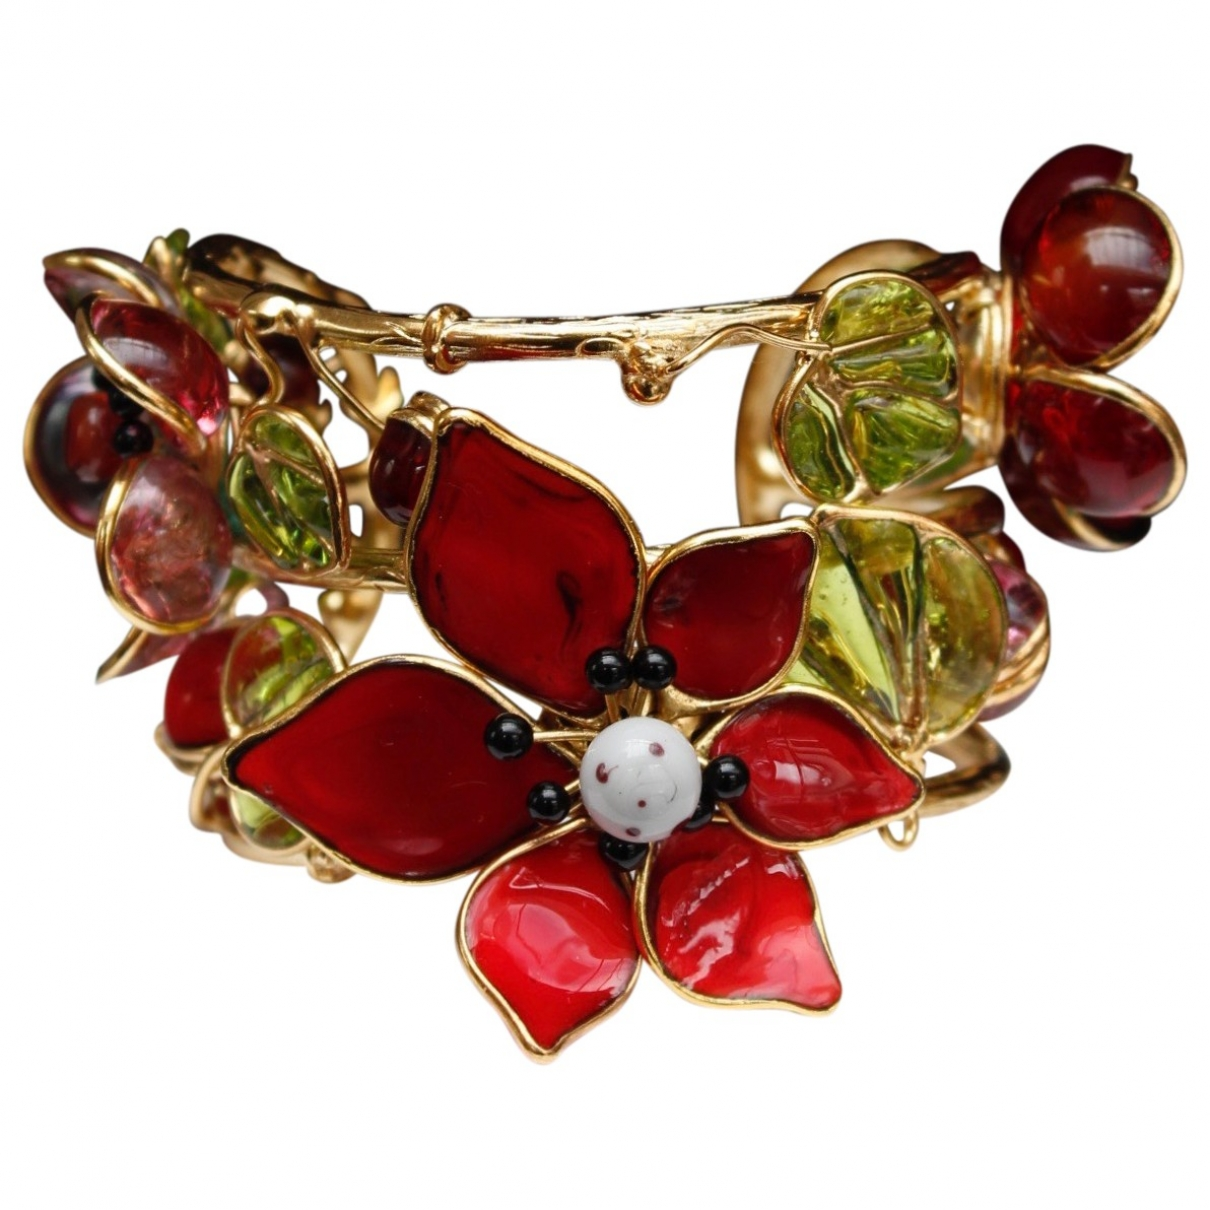 Non Signe / Unsigned Motifs Floraux Armband in  Rot Glas